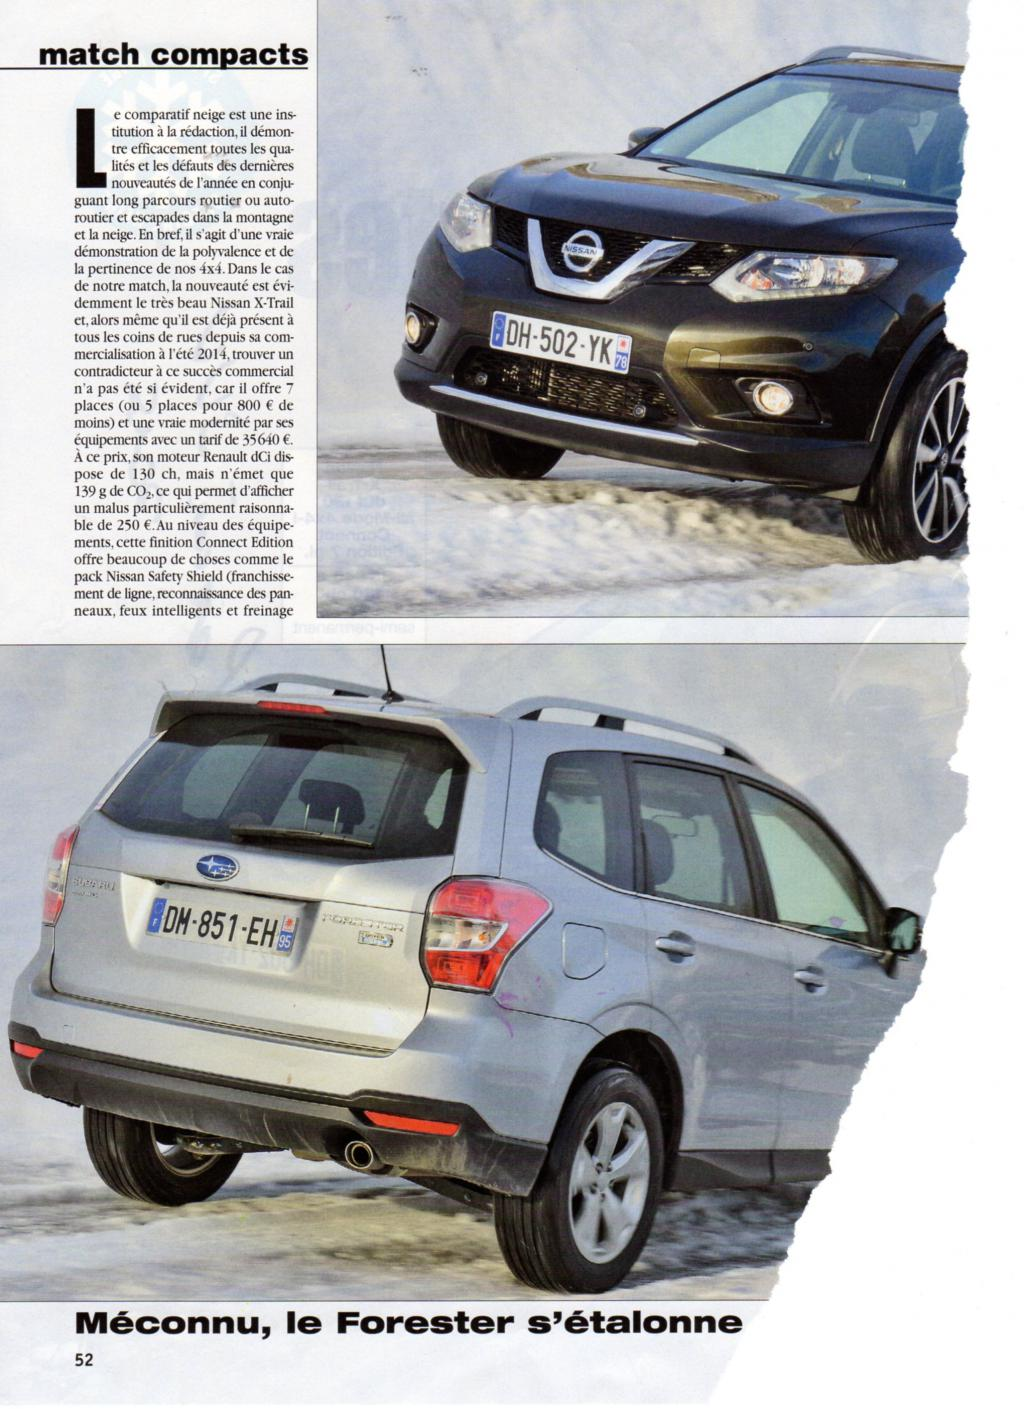 forum subaru diesel sur 4x4 magazine de d but 2015 comparatif a la neige entre forester. Black Bedroom Furniture Sets. Home Design Ideas